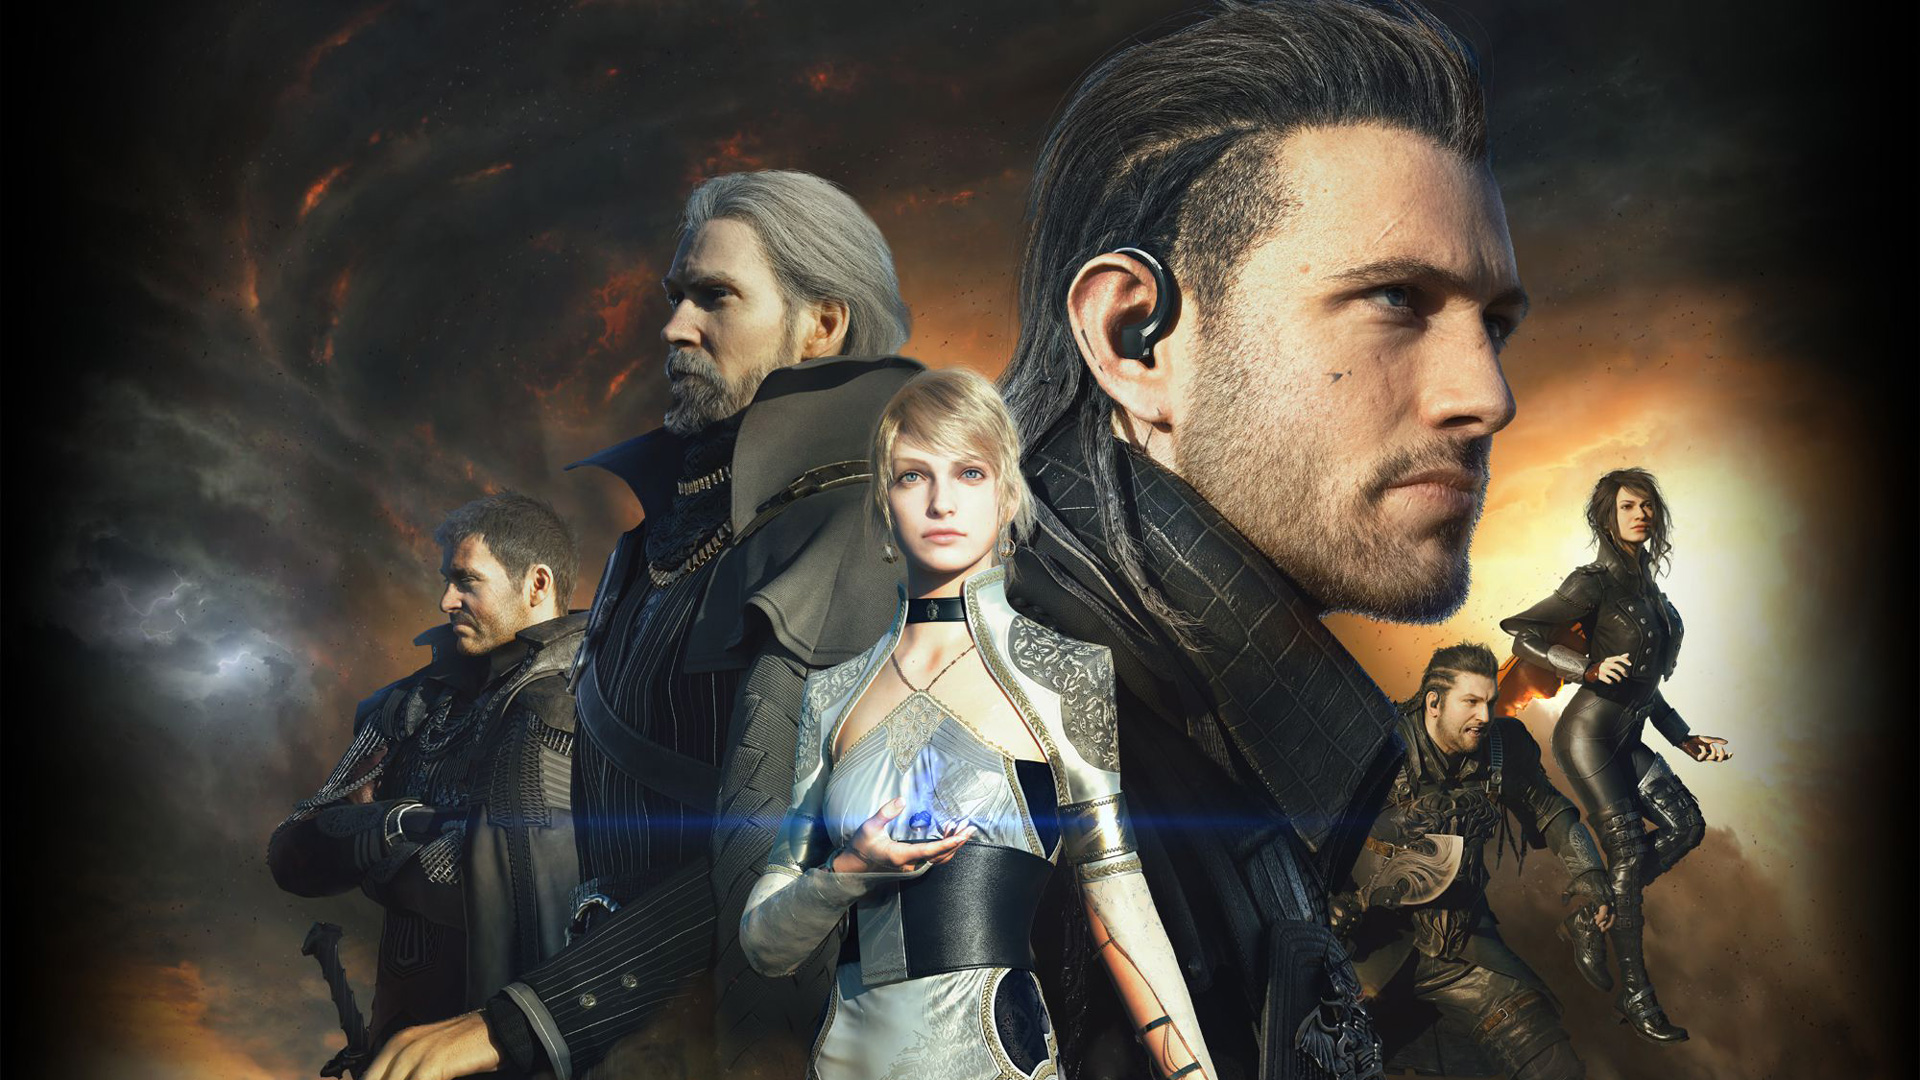 kingsglaive final fantasy xv, hd movies, 4k wallpapers, images